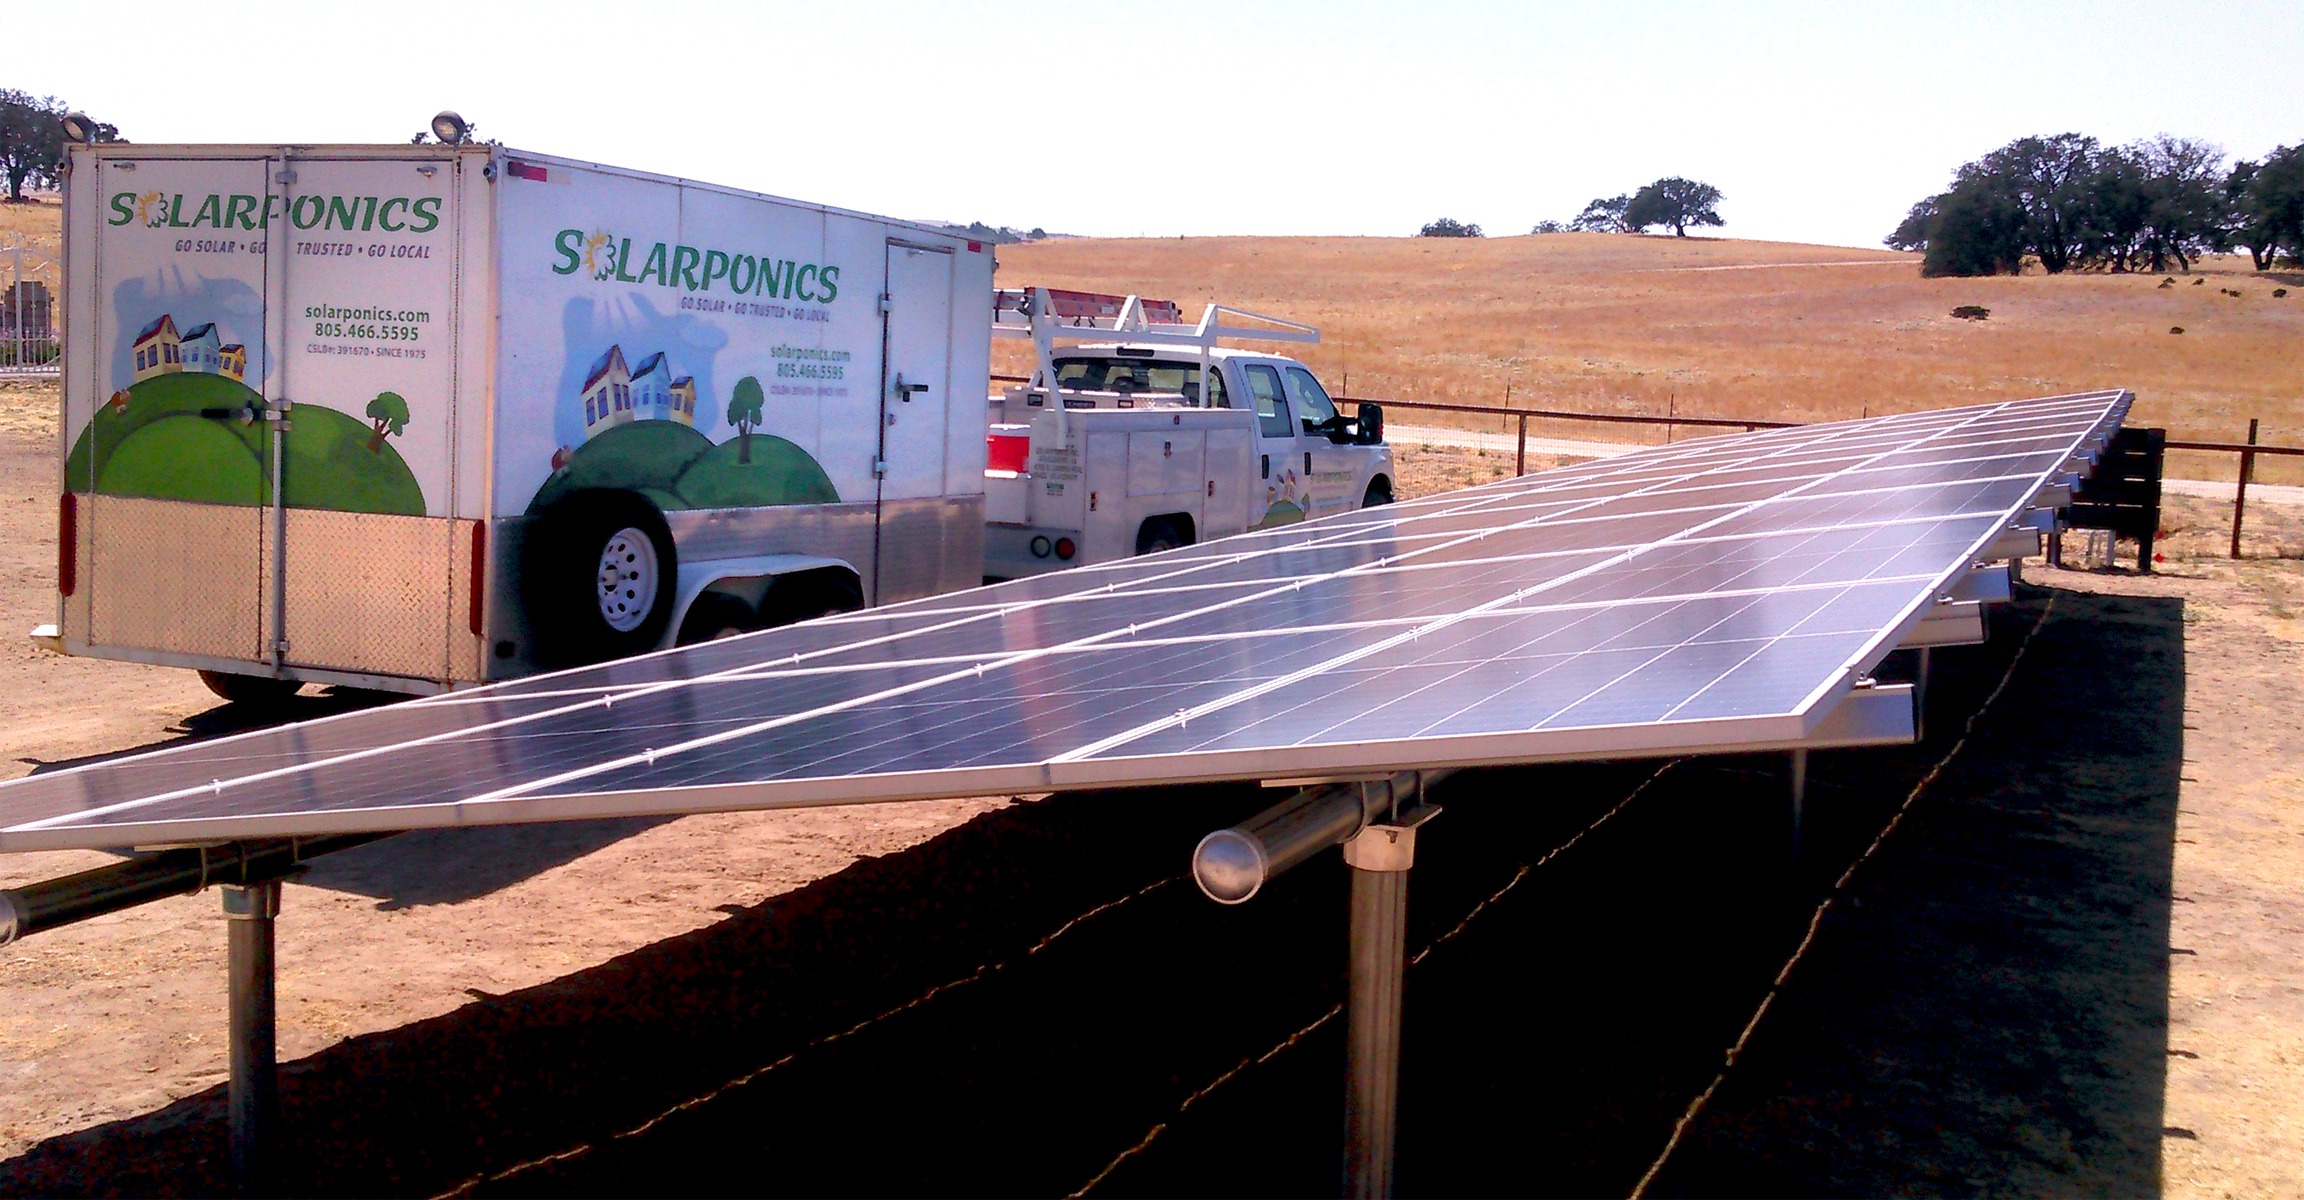 Atascadero solar ground mount by Solarponics.